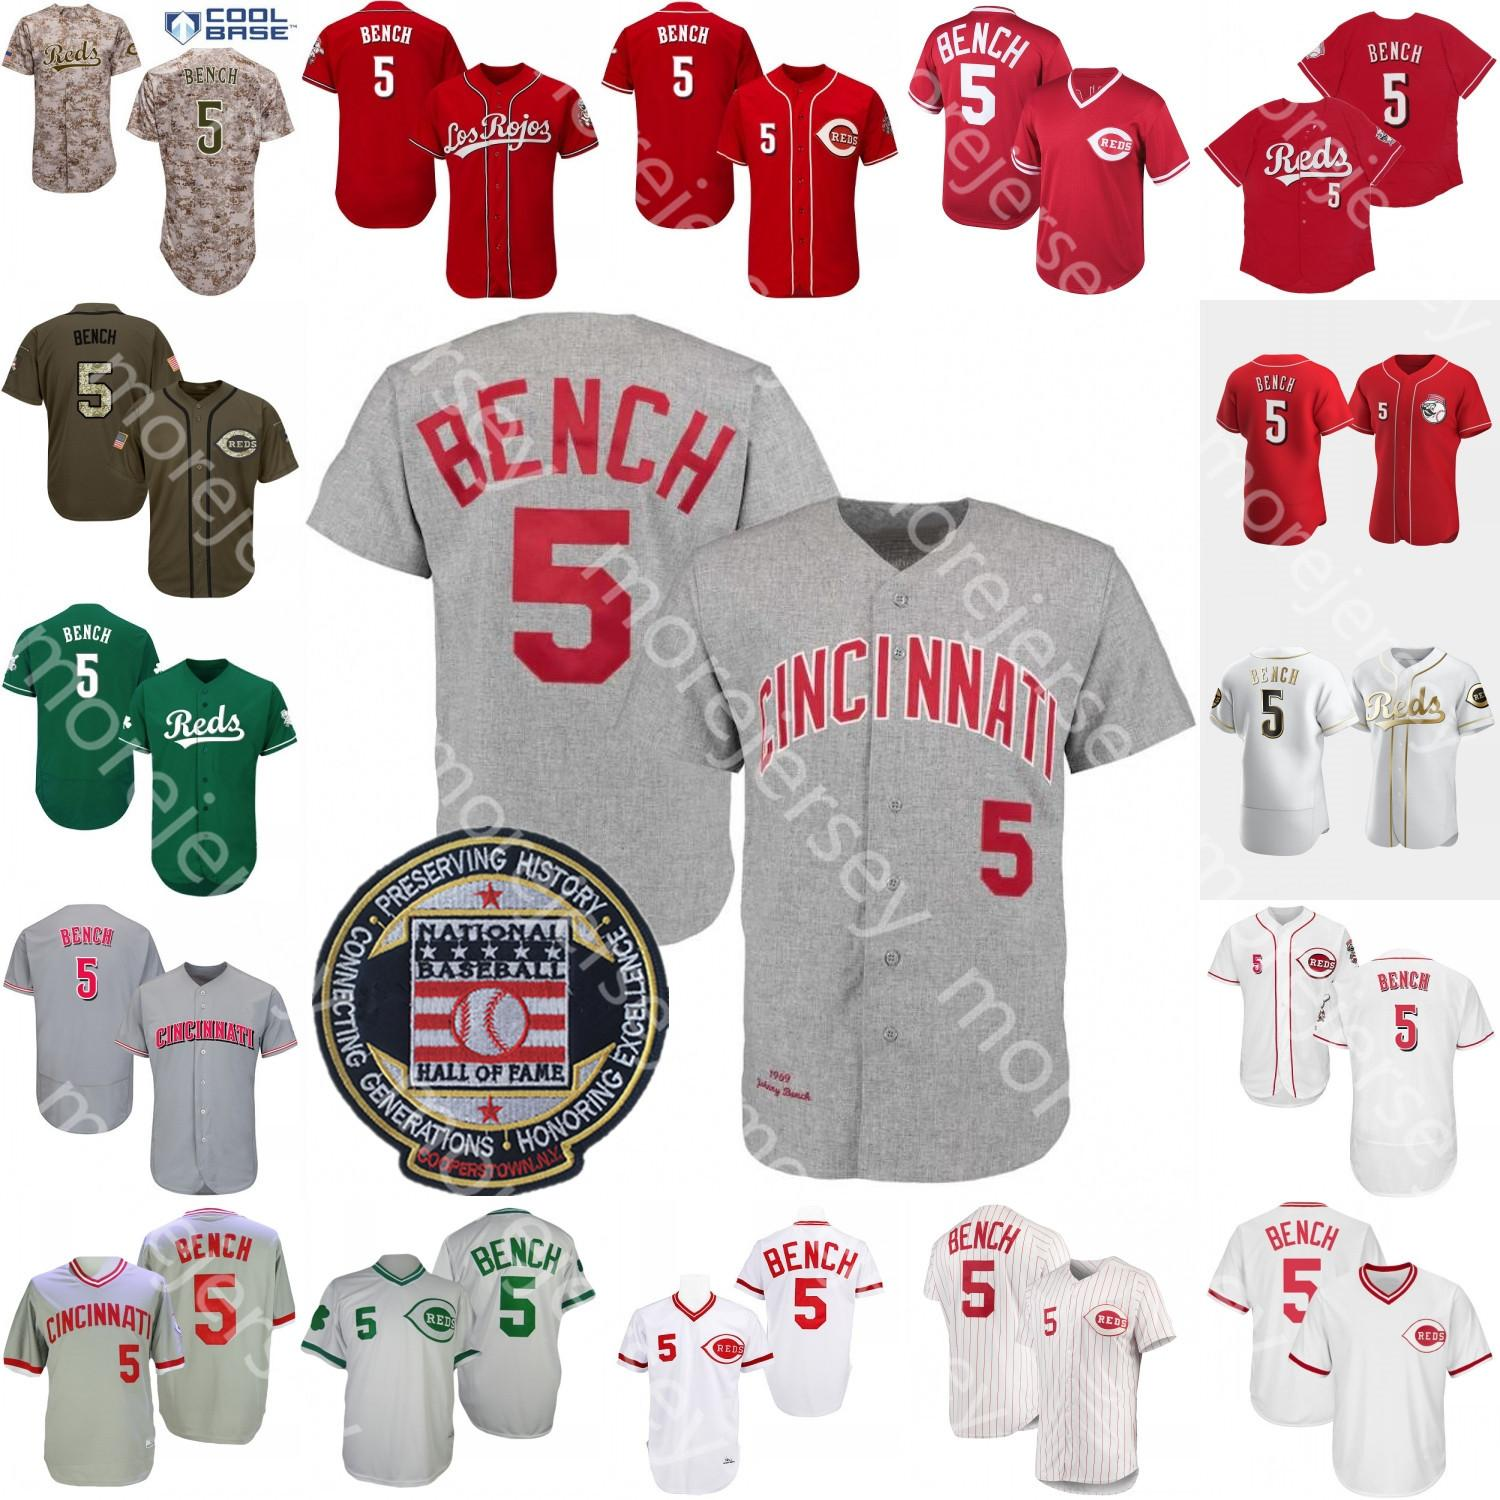 Johnny Bench Jersey Hall of Fame Patch 1969 1976 Blanc Grey Cooperstown Gris Red White Pinstripe Player Voyants Salut au service Blanc Golden Green Camo Taille S-3XL